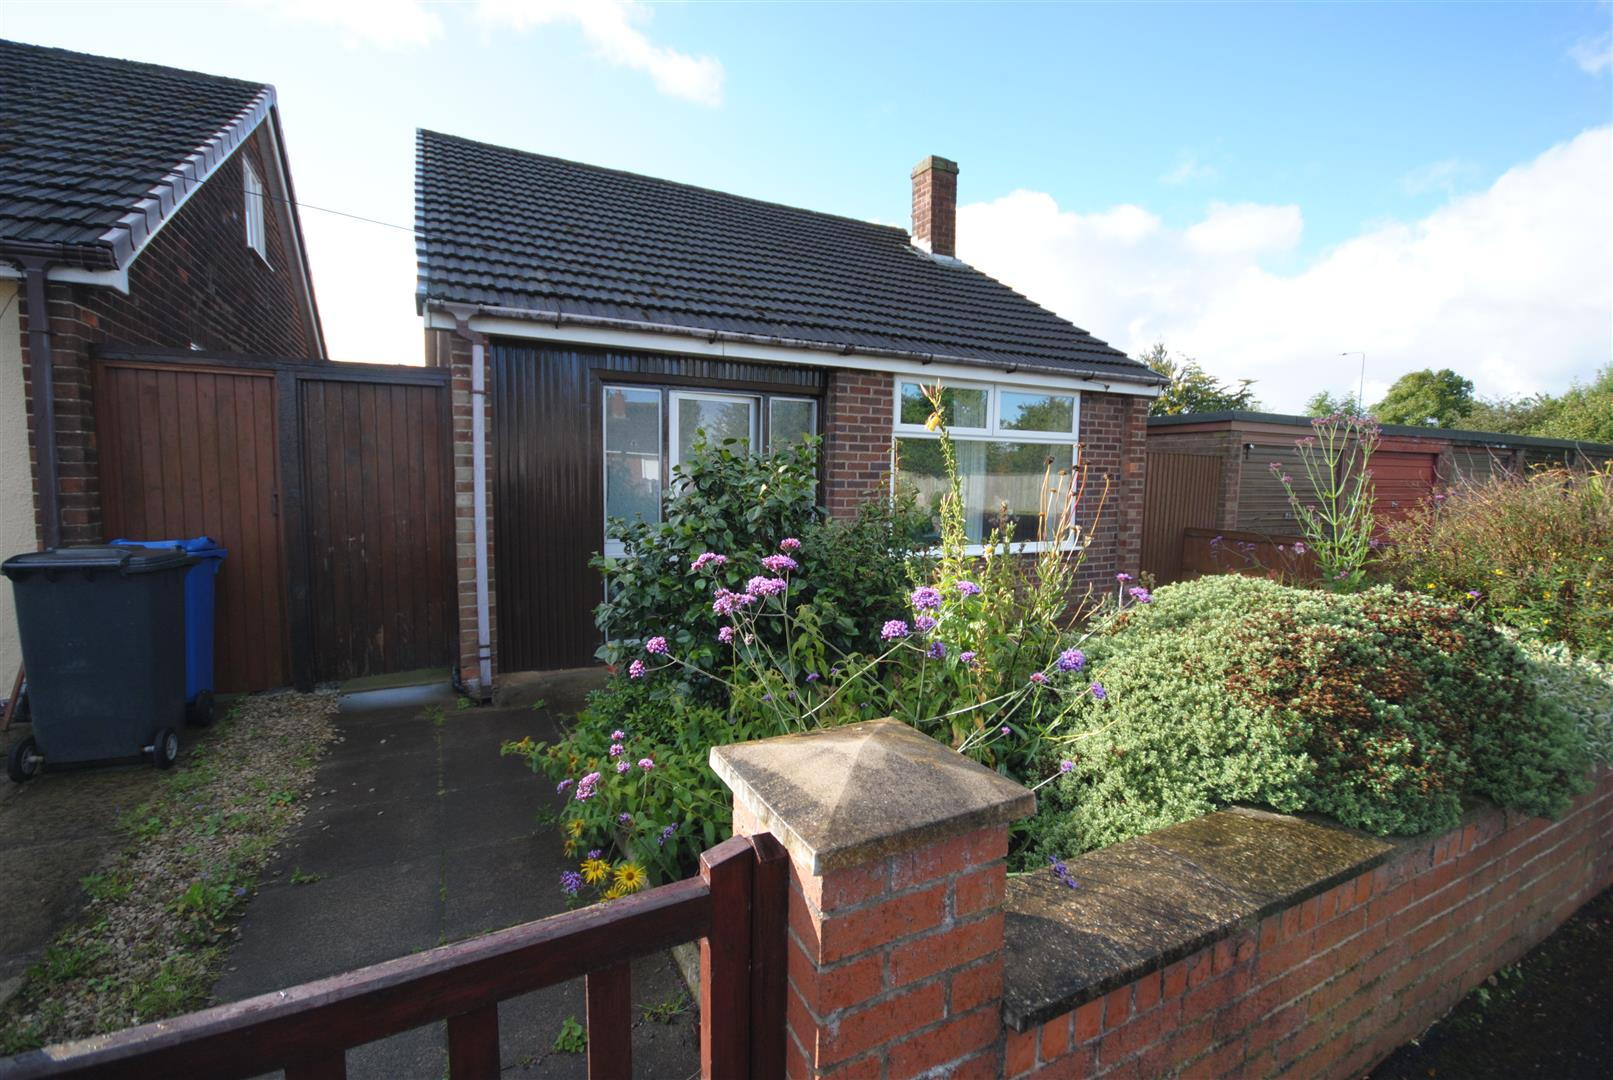 2 Bedrooms Detached Bungalow for sale in Miles Lane, Shevington, Wigan